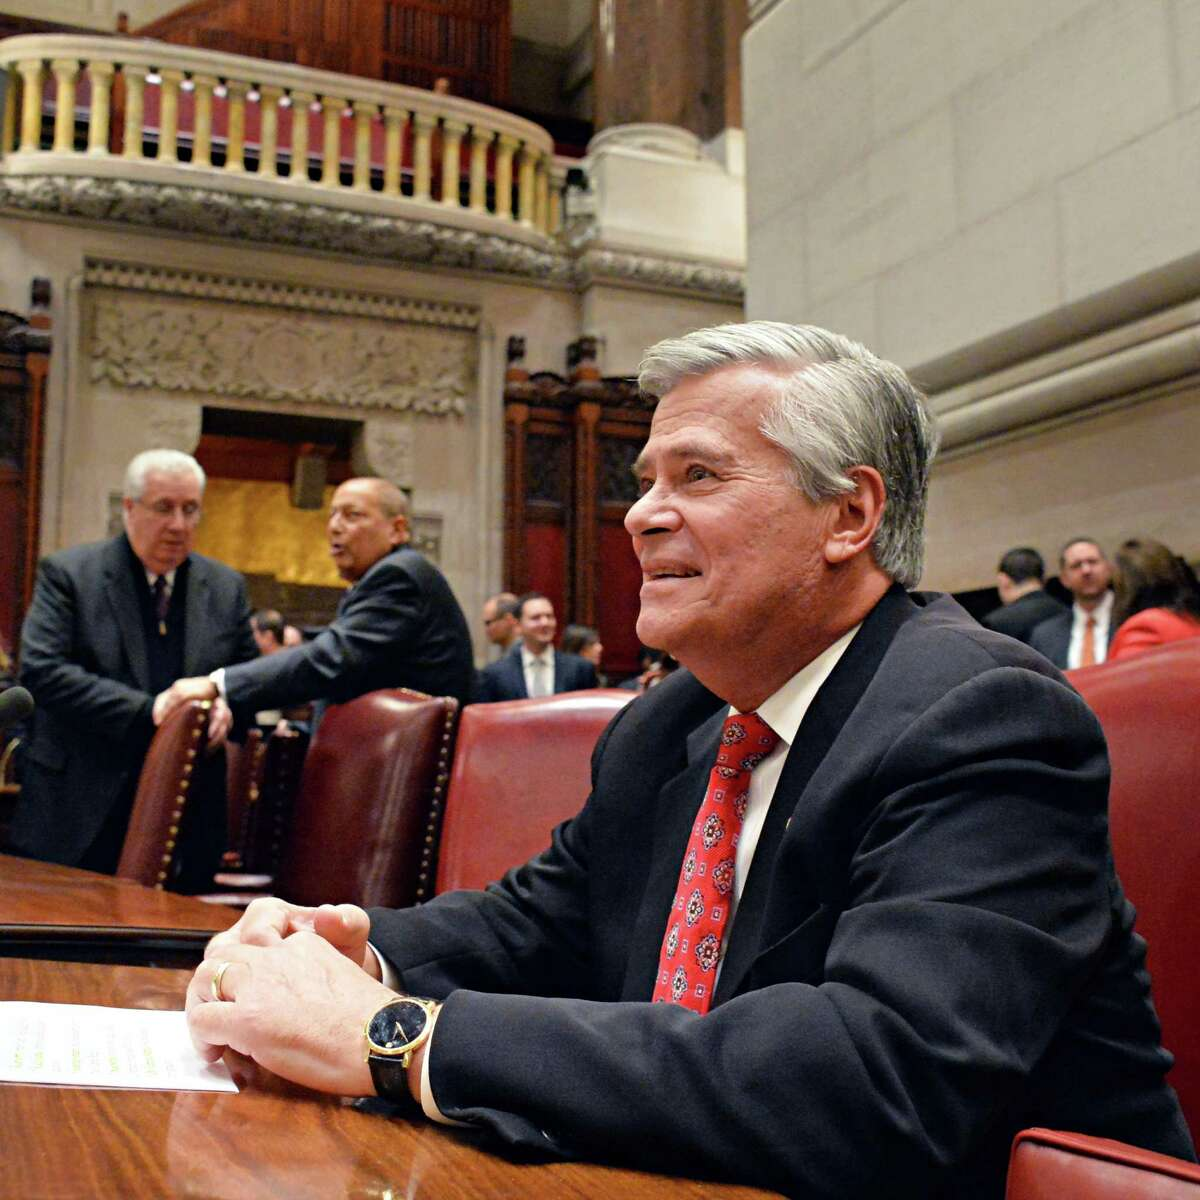 Sen. GOP leader Dean Skelos, during the Senate's first session of the new year Wednesday, Jan. 7, 2015, in Albany, N.Y. (John Carl D'Annibale / Times Union)